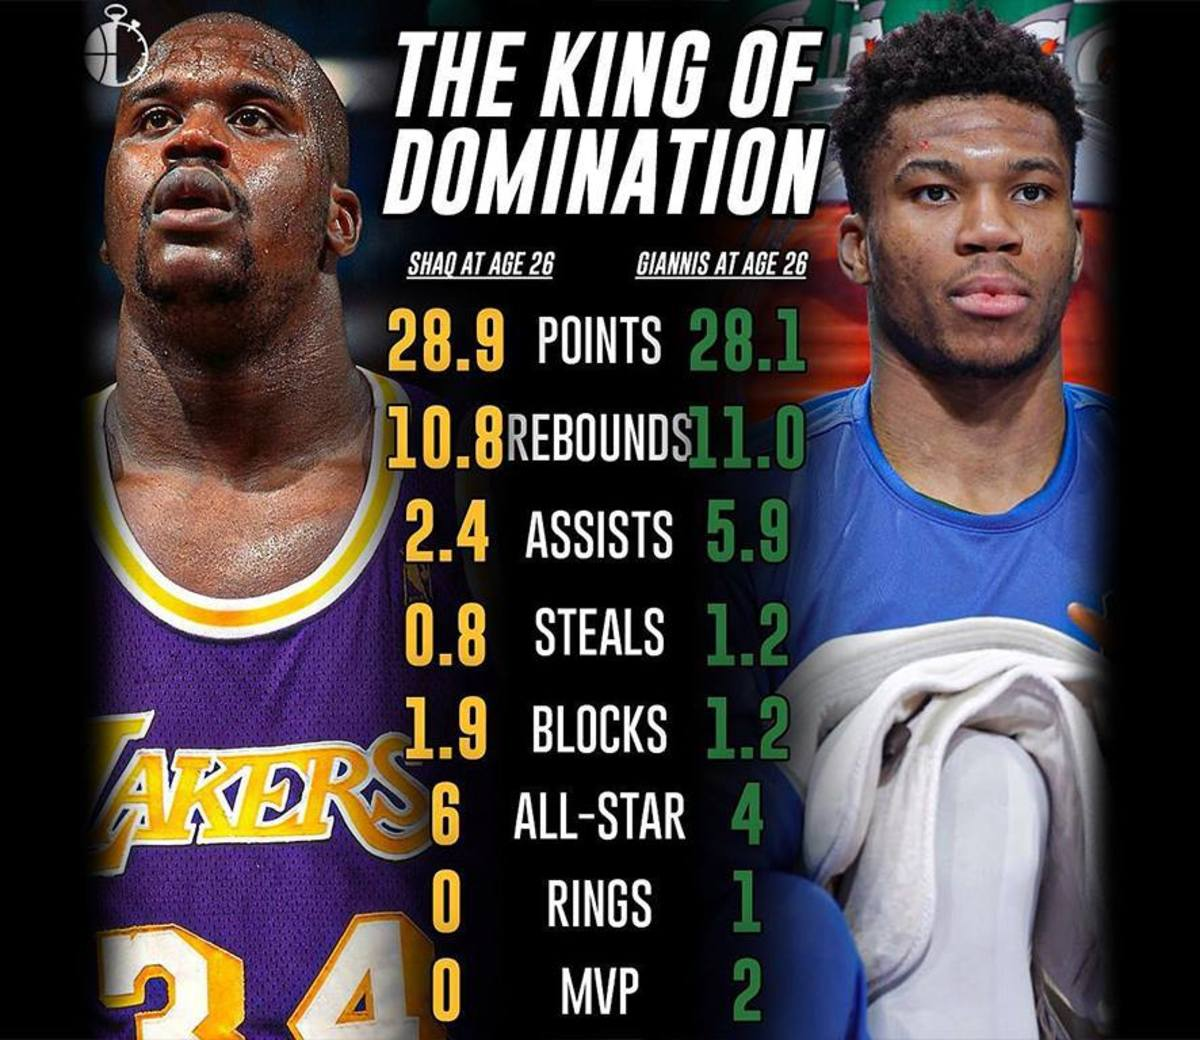 Comparing Shaquille O'Neal And Giannis Antetokounmpo At Age 26: The Kings Of Domination